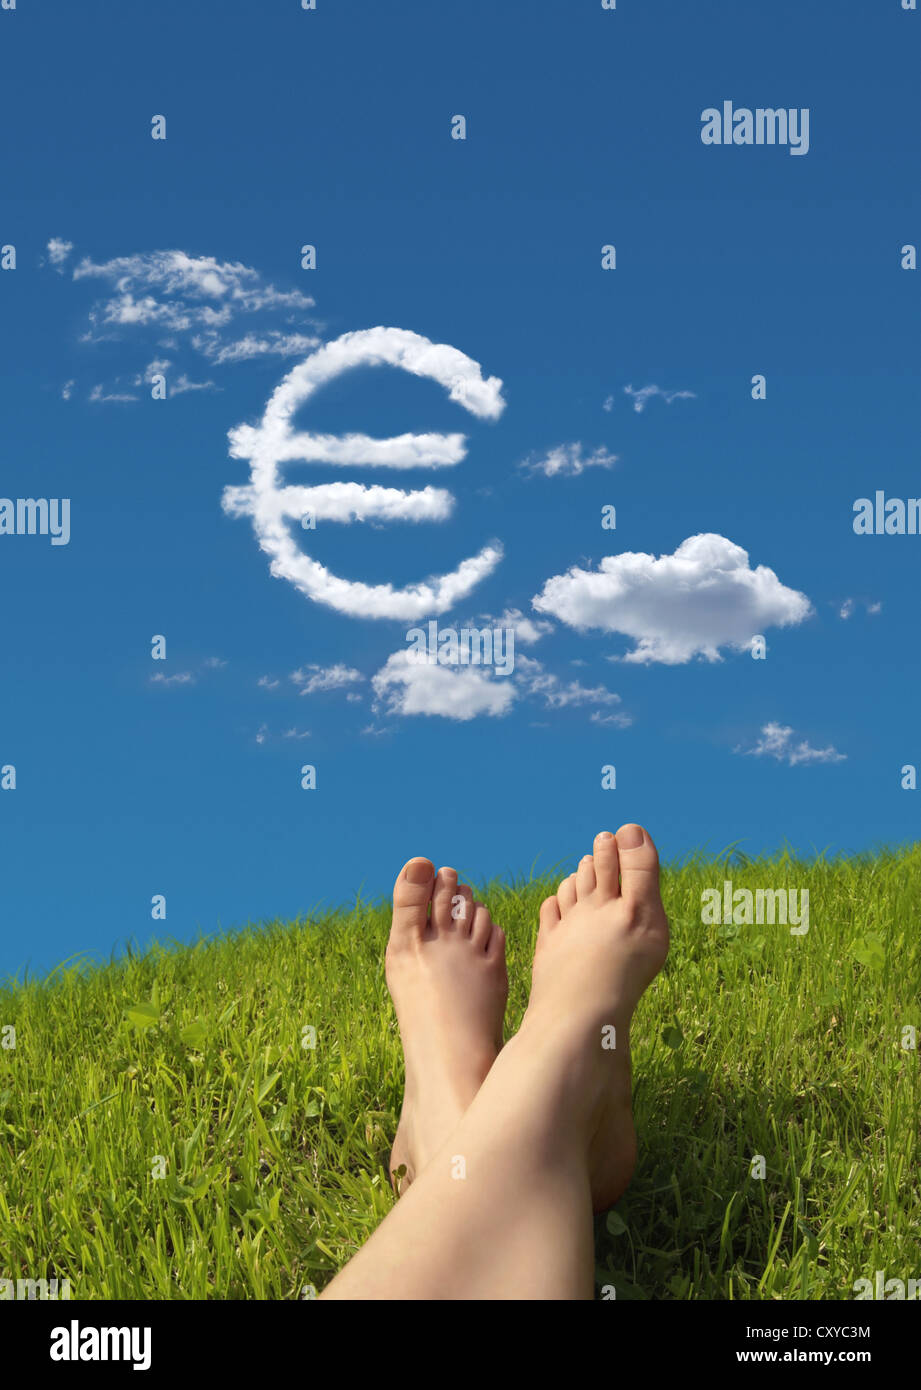 Woman lying on a meadow, detail of feet with a cloud formation shaped like a euro symbol in the sky - Stock Image